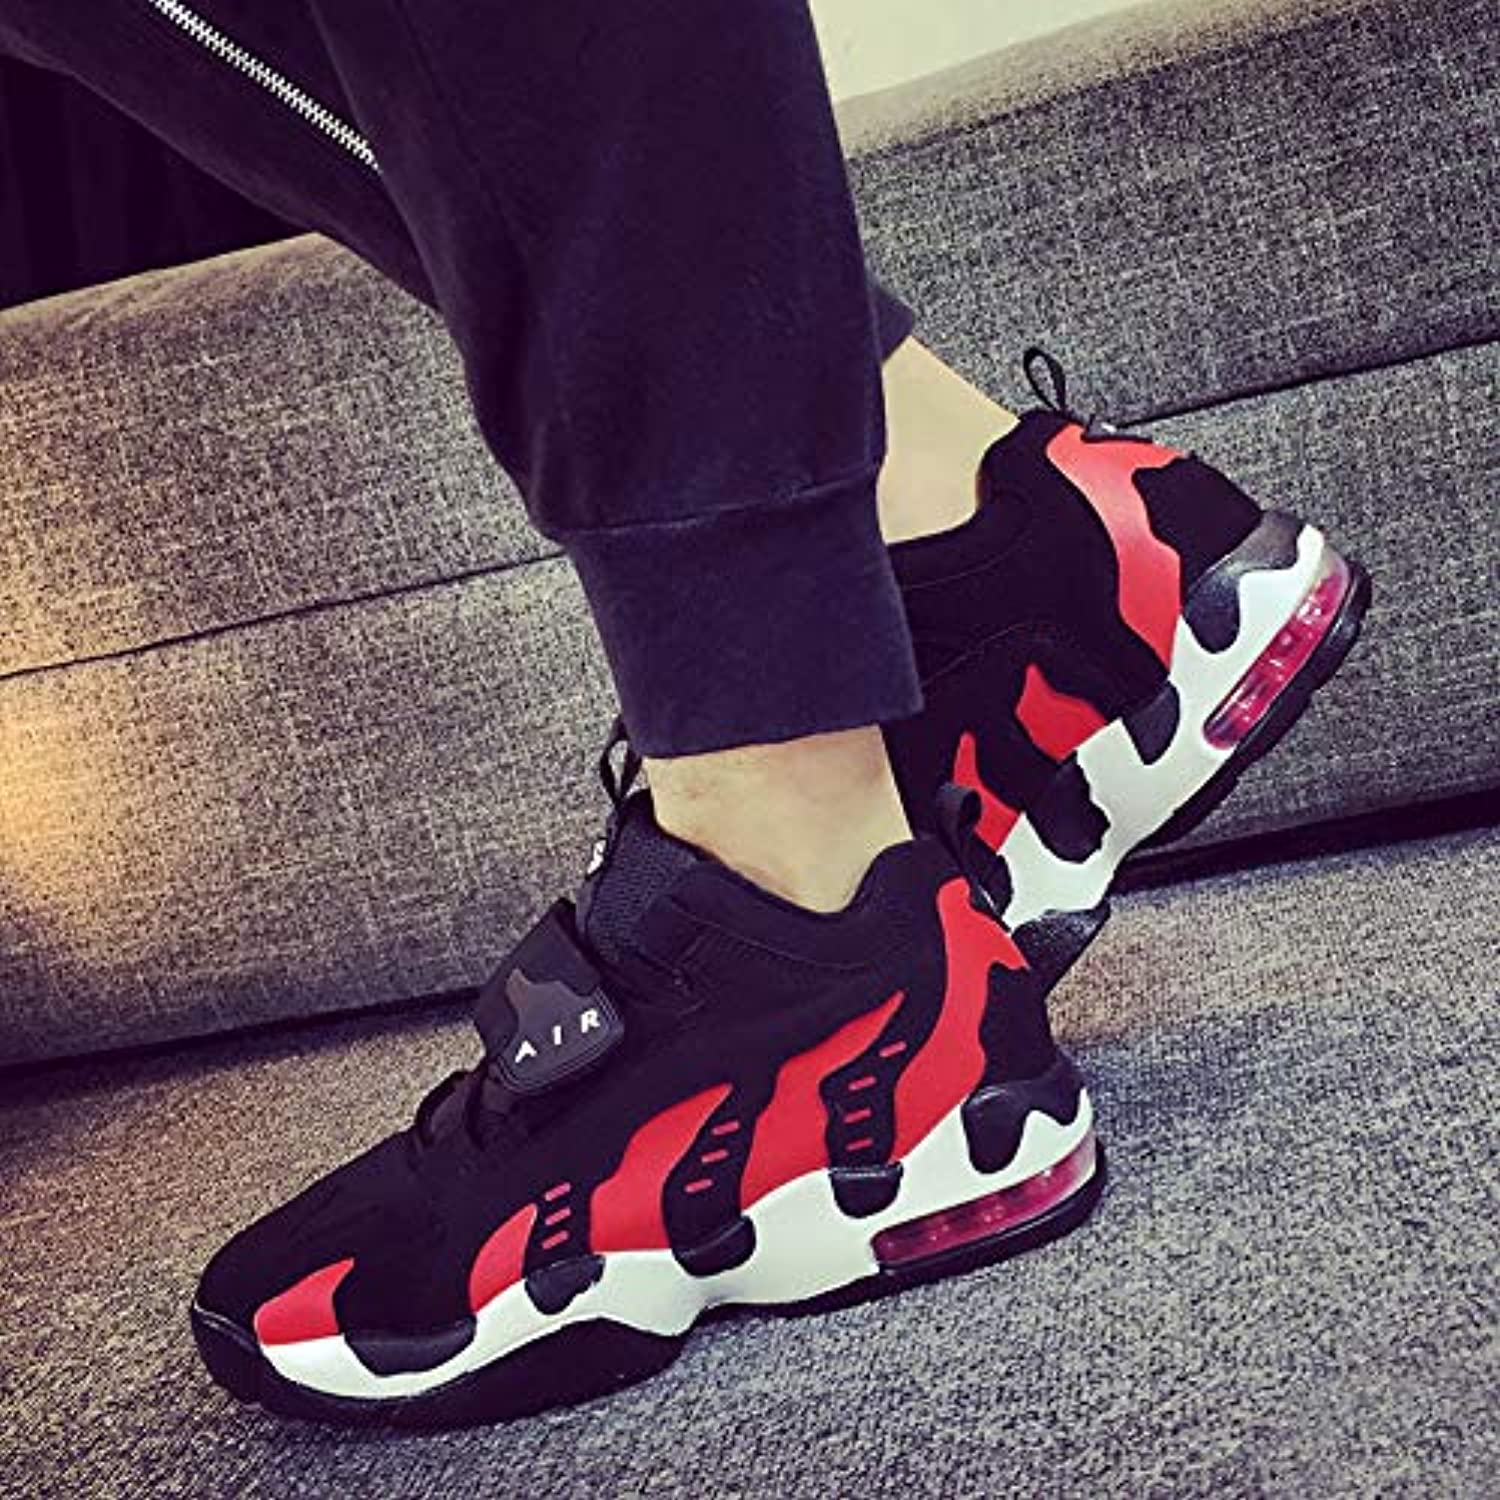 LOVDRAM Boots Men's Basketball shoes Four Seasons Men'S shoes Air Cushion Running shoes Sports shoes Men'S Fashion Couple Walking shoes